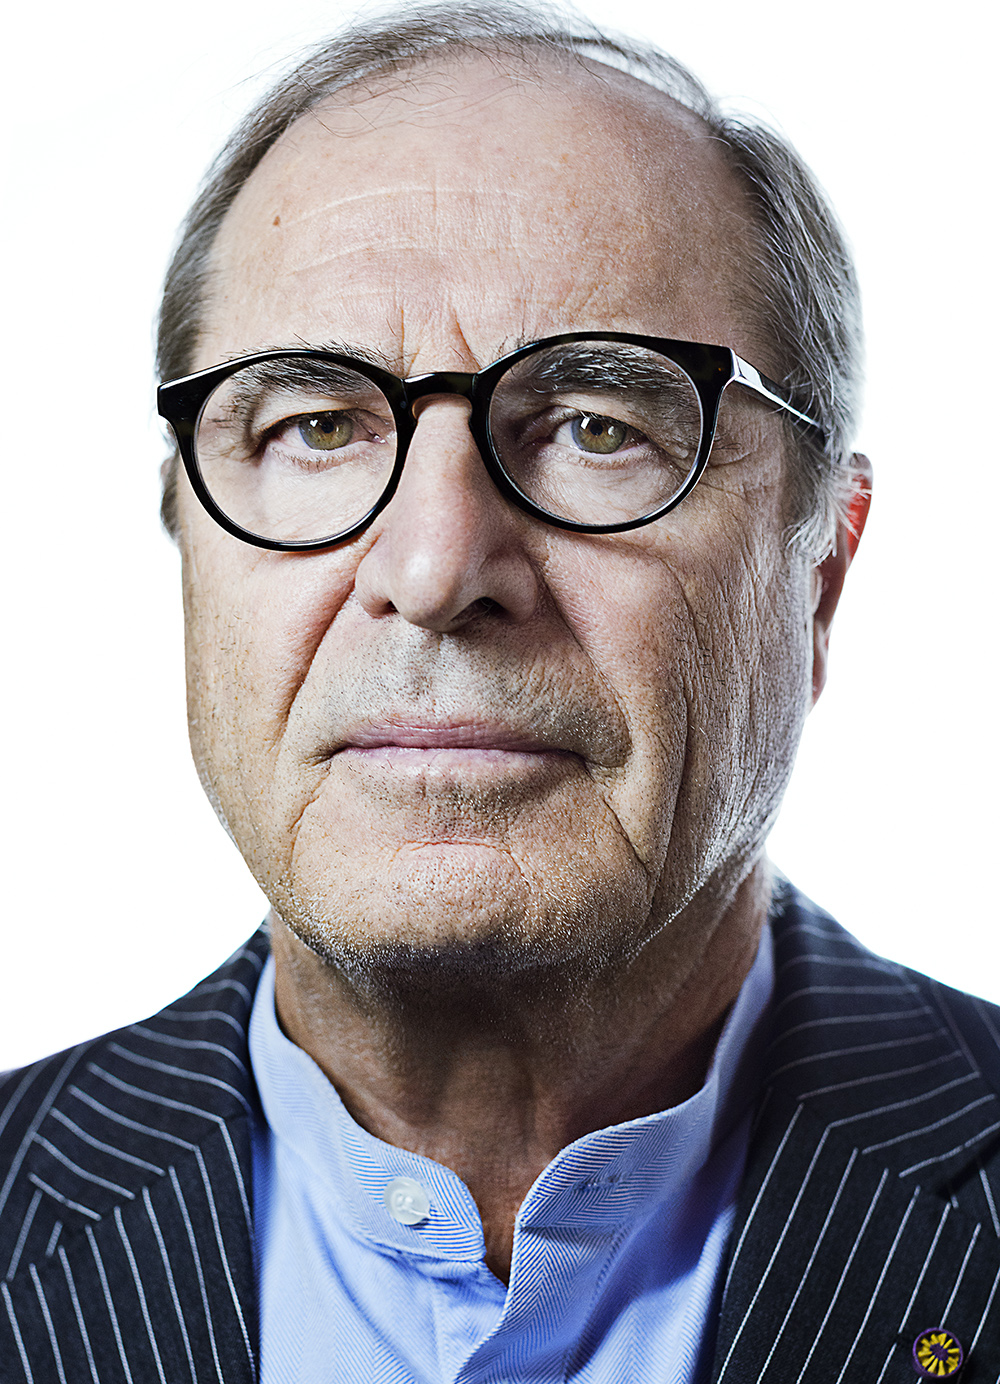 paul theroux is an american travel writer and novelist with an